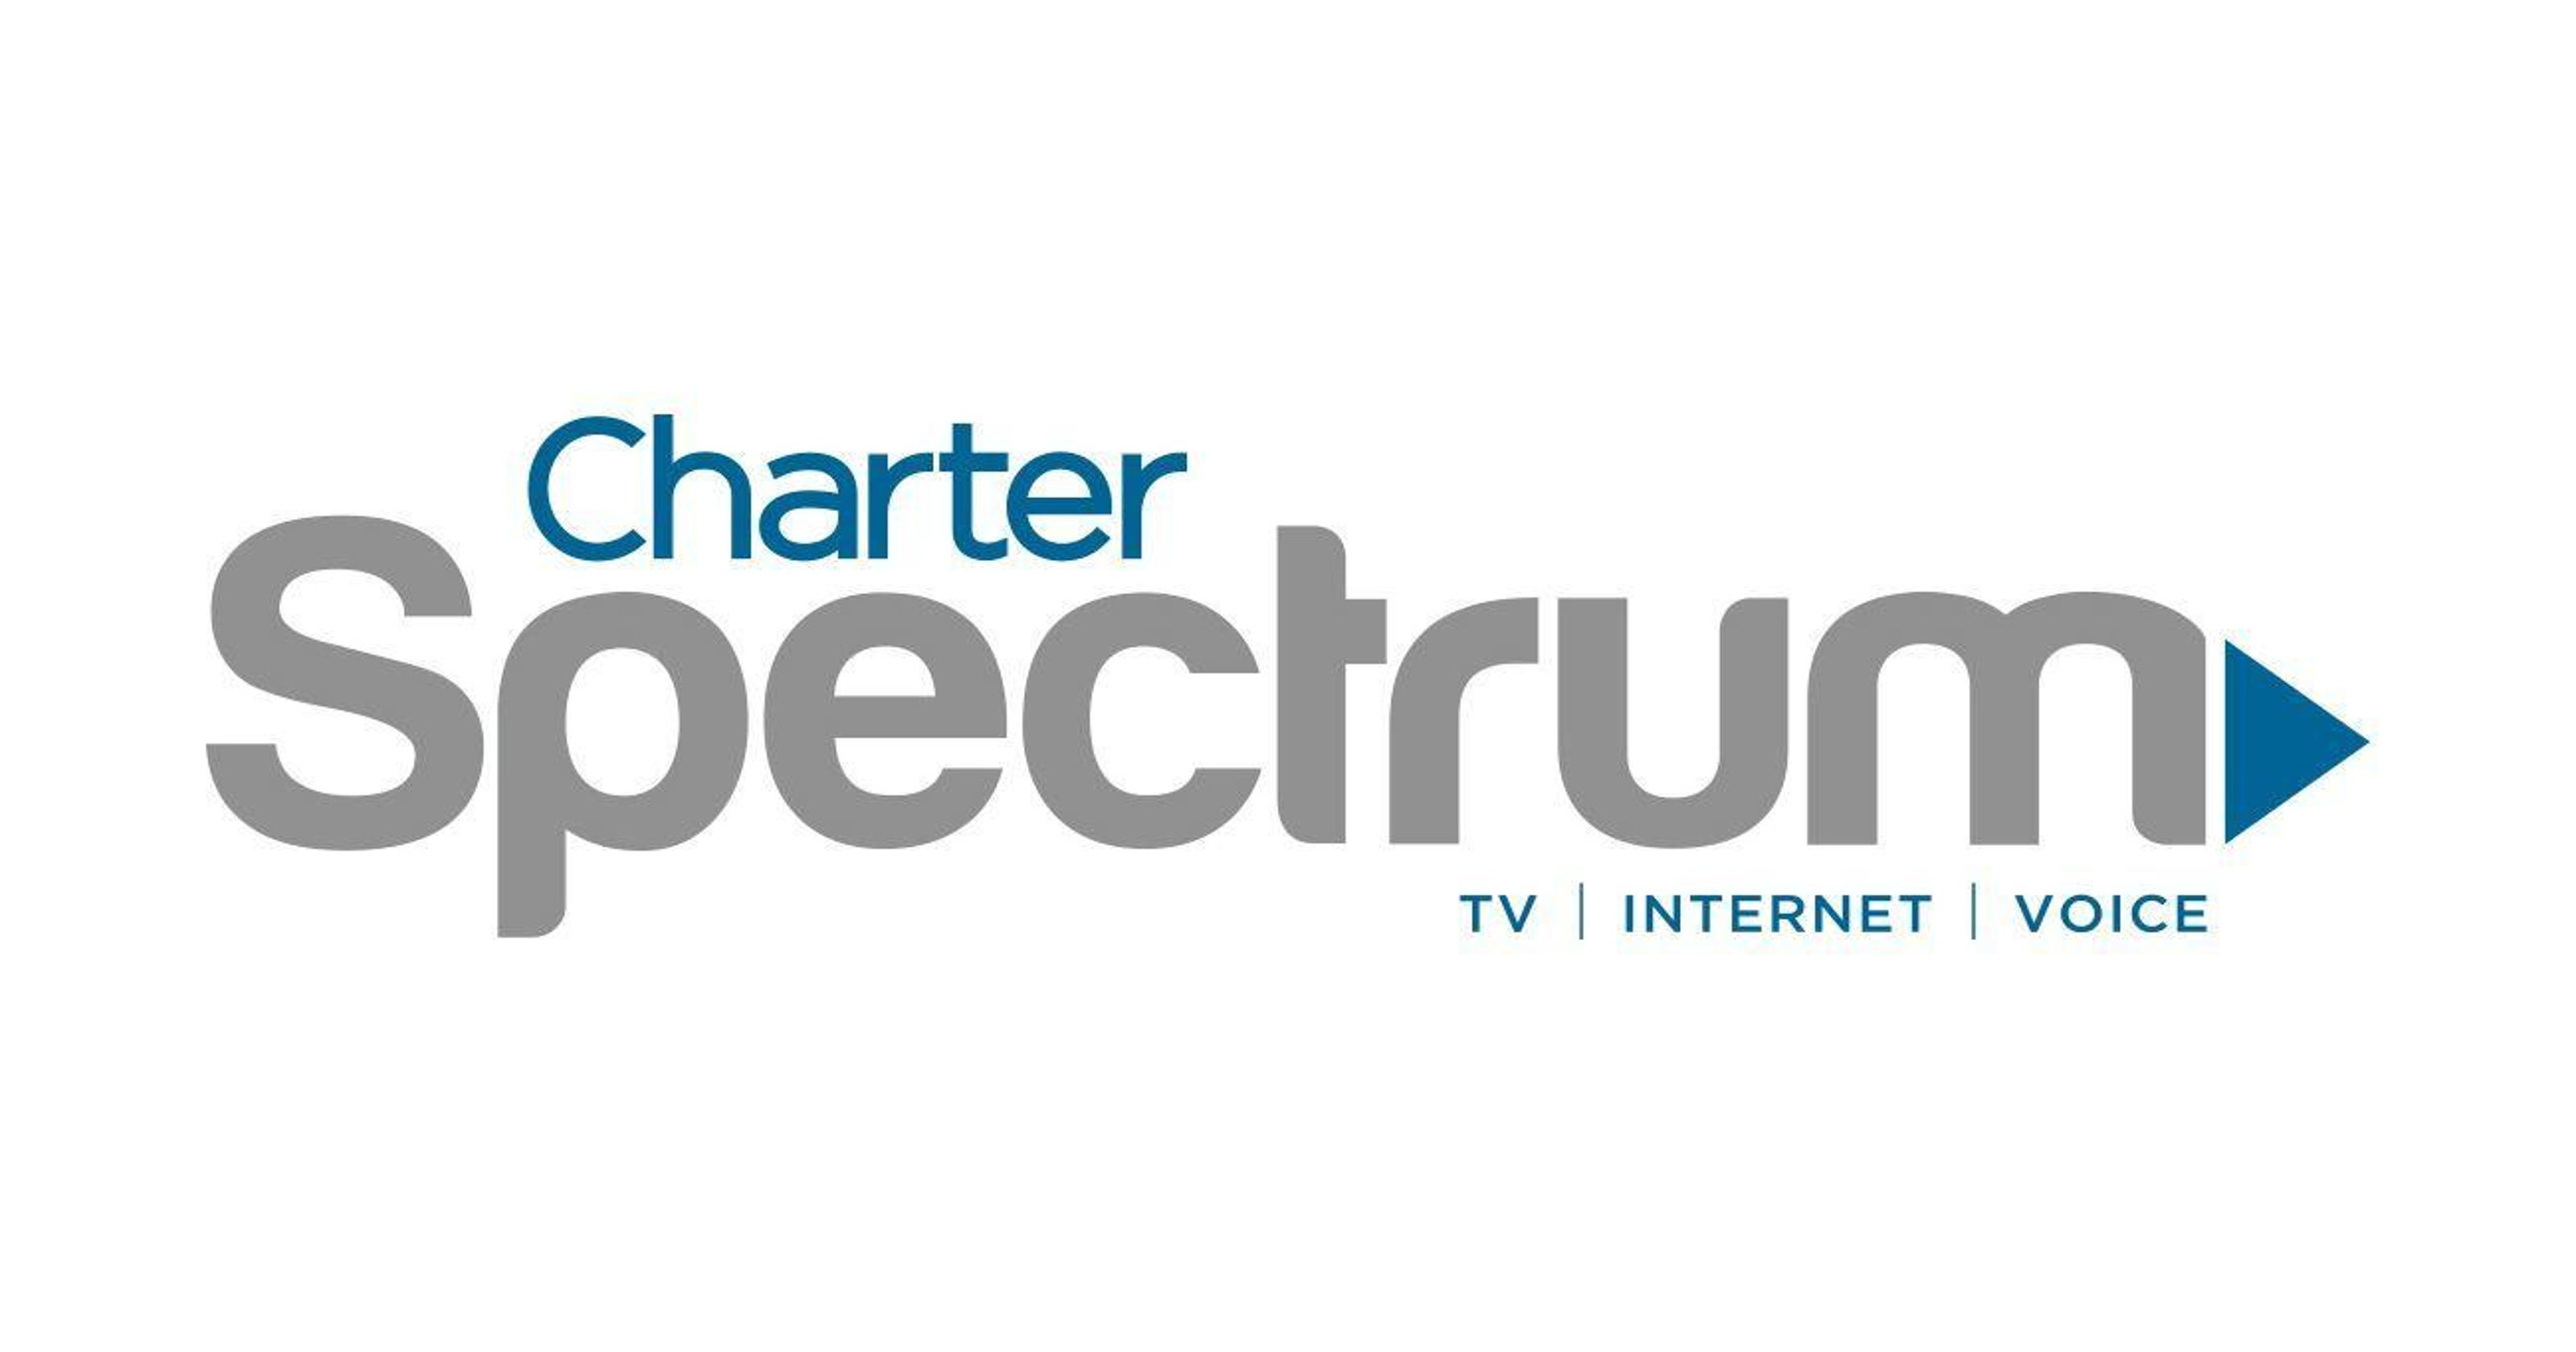 Why did New York rush the Charter Spectrum vote?